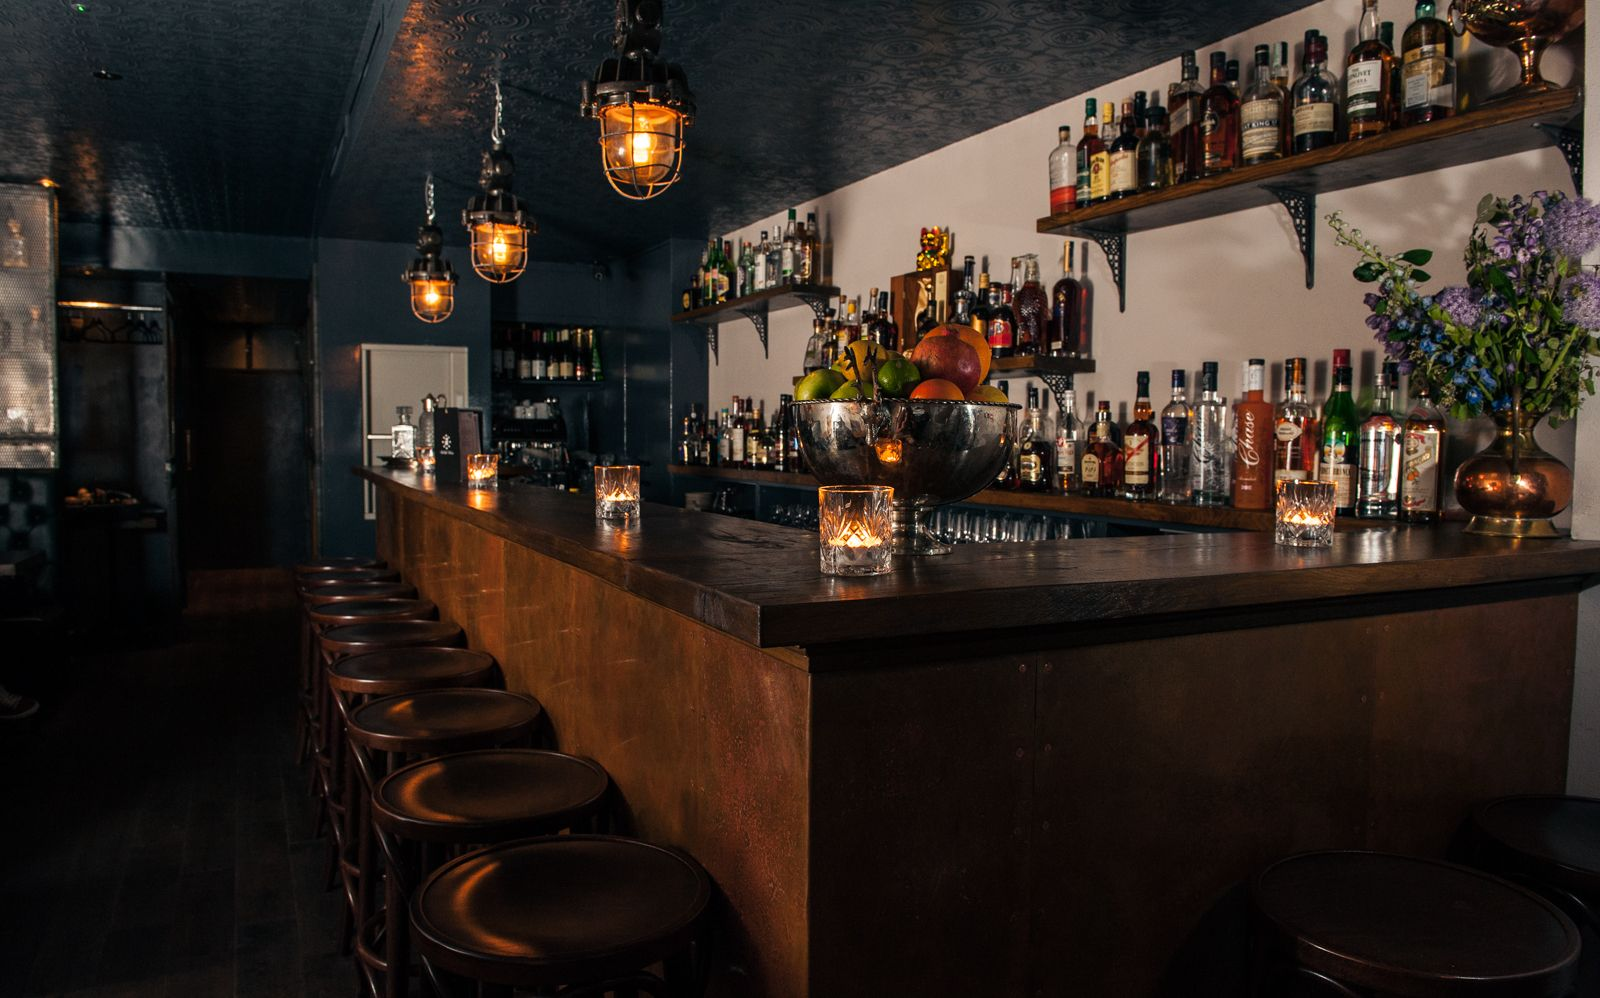 East London's first & only a Rum Bar, with killer cocktails, housed in a plush basement, lit by candlelight & set to a backtrack of rock 'n' roll